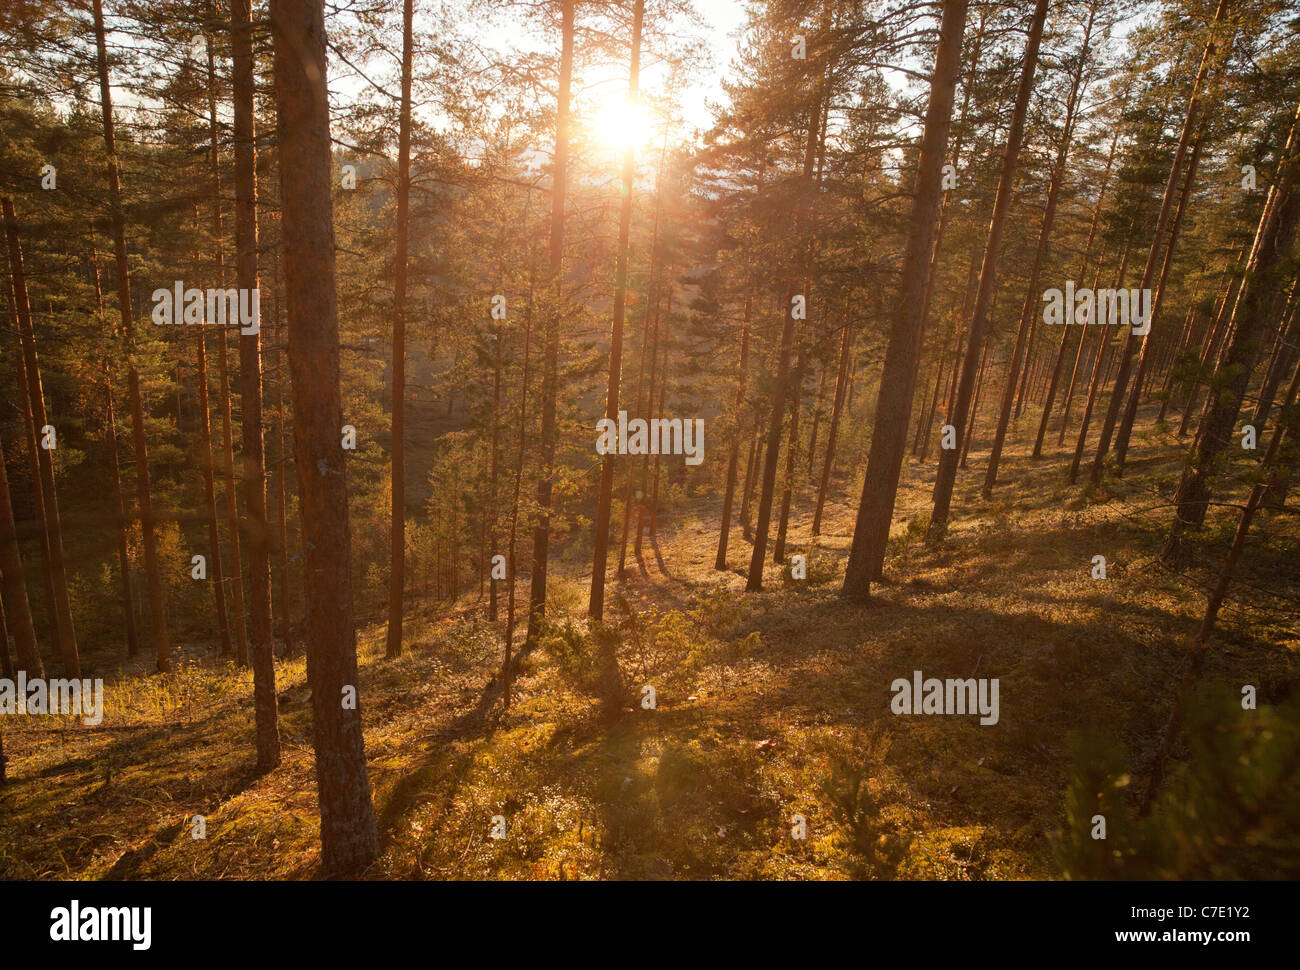 Young pine ( pinus sylvestris ) forest growing on a dry sandy ridge , Finland - Stock Image